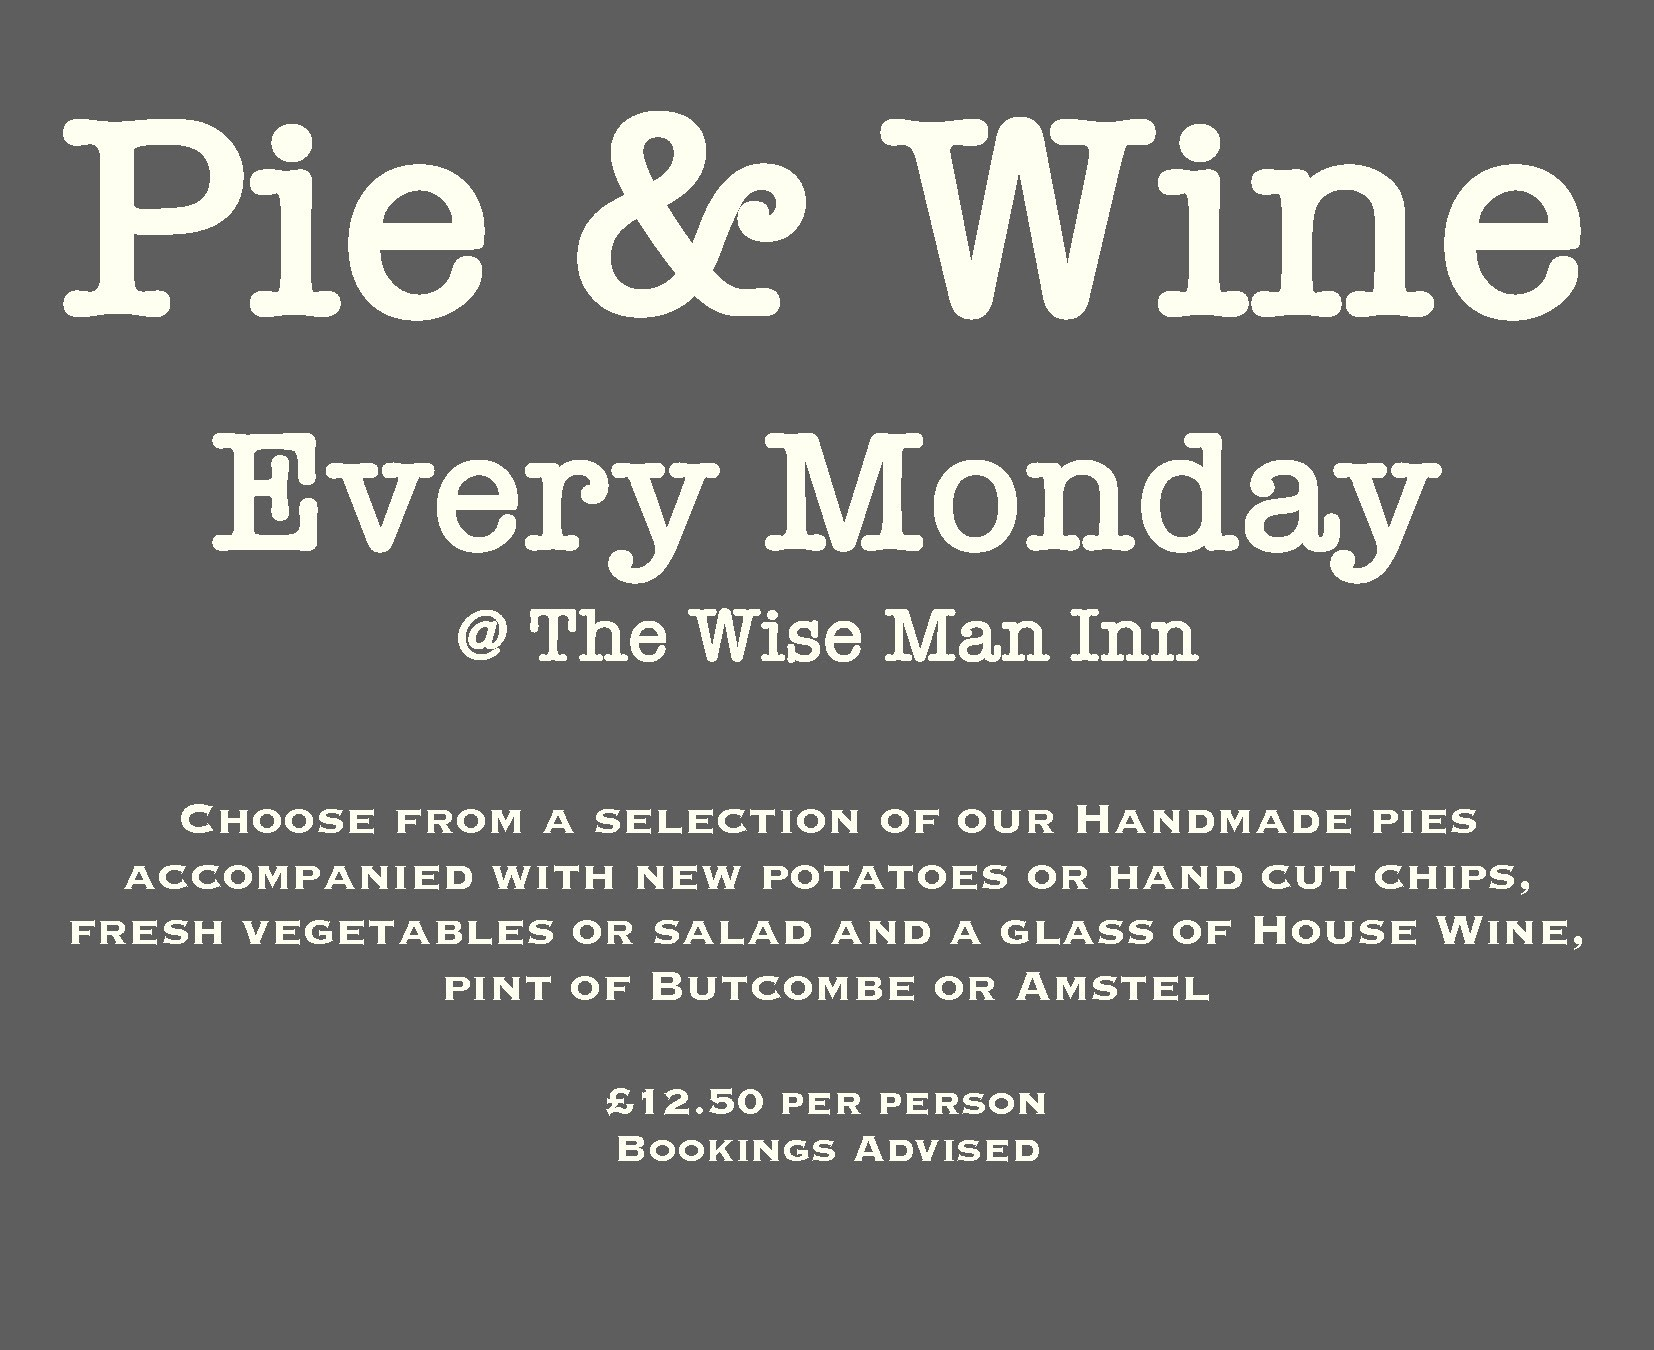 pie and wine mondays 2019